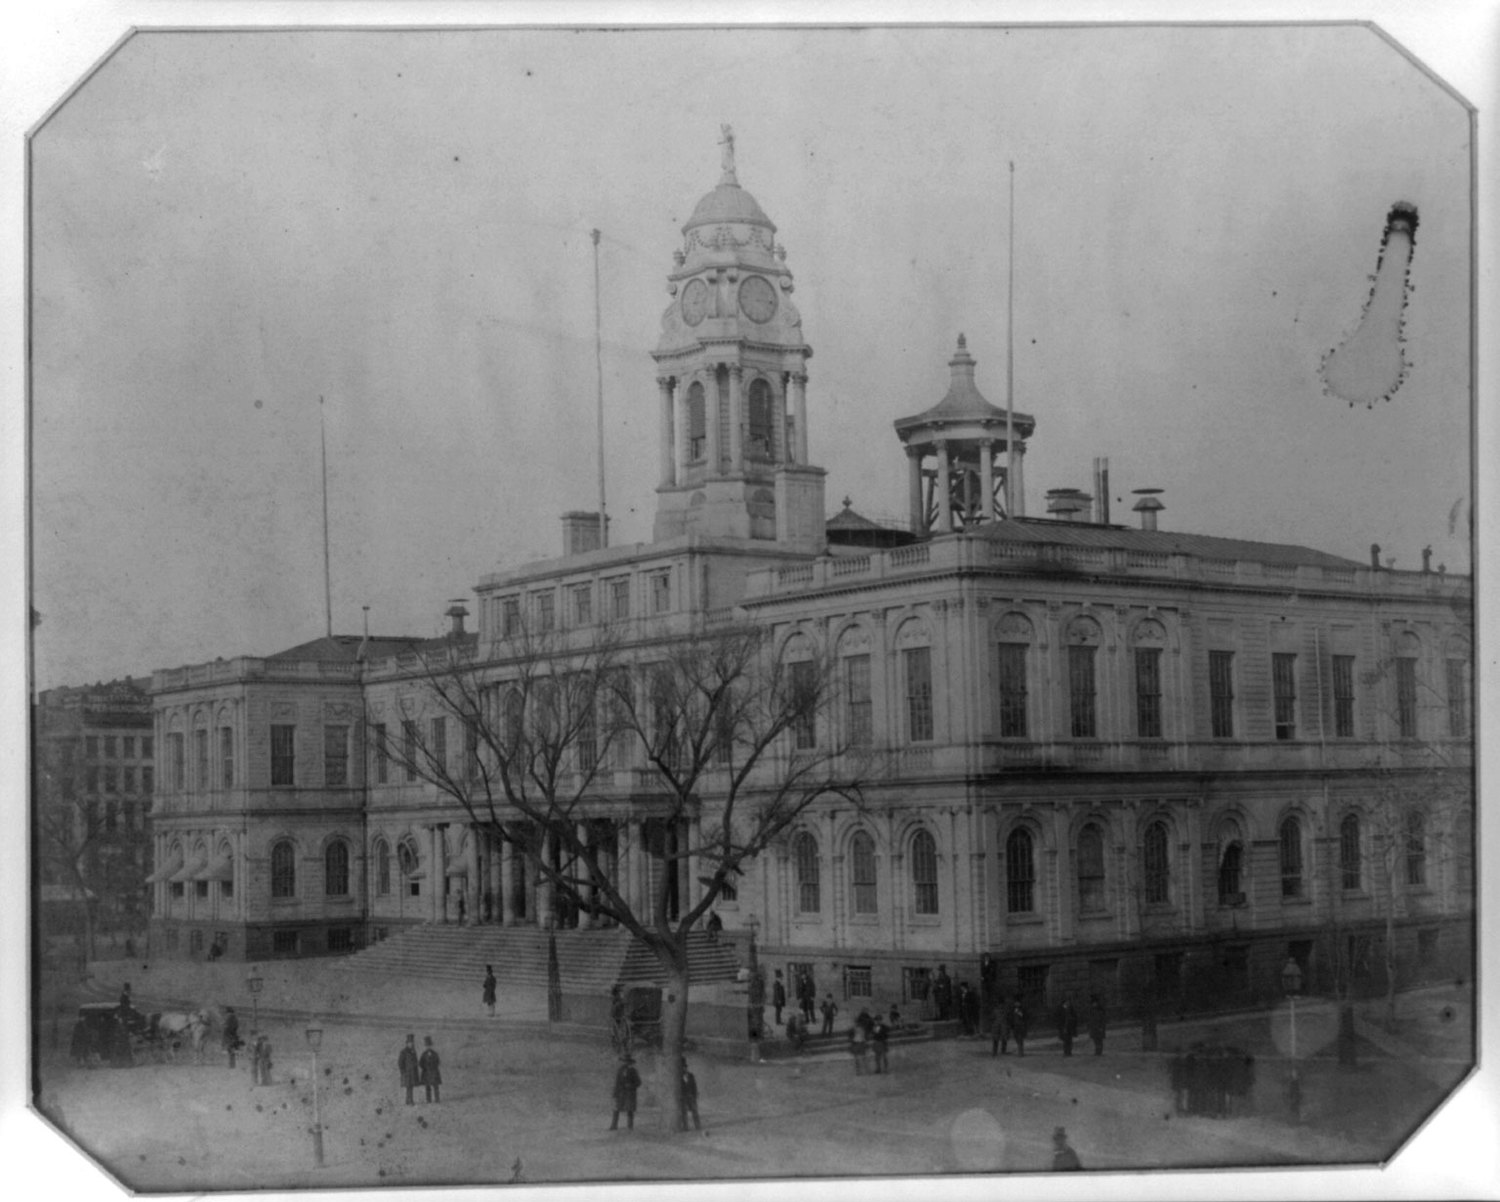 City hall, New York, 1855